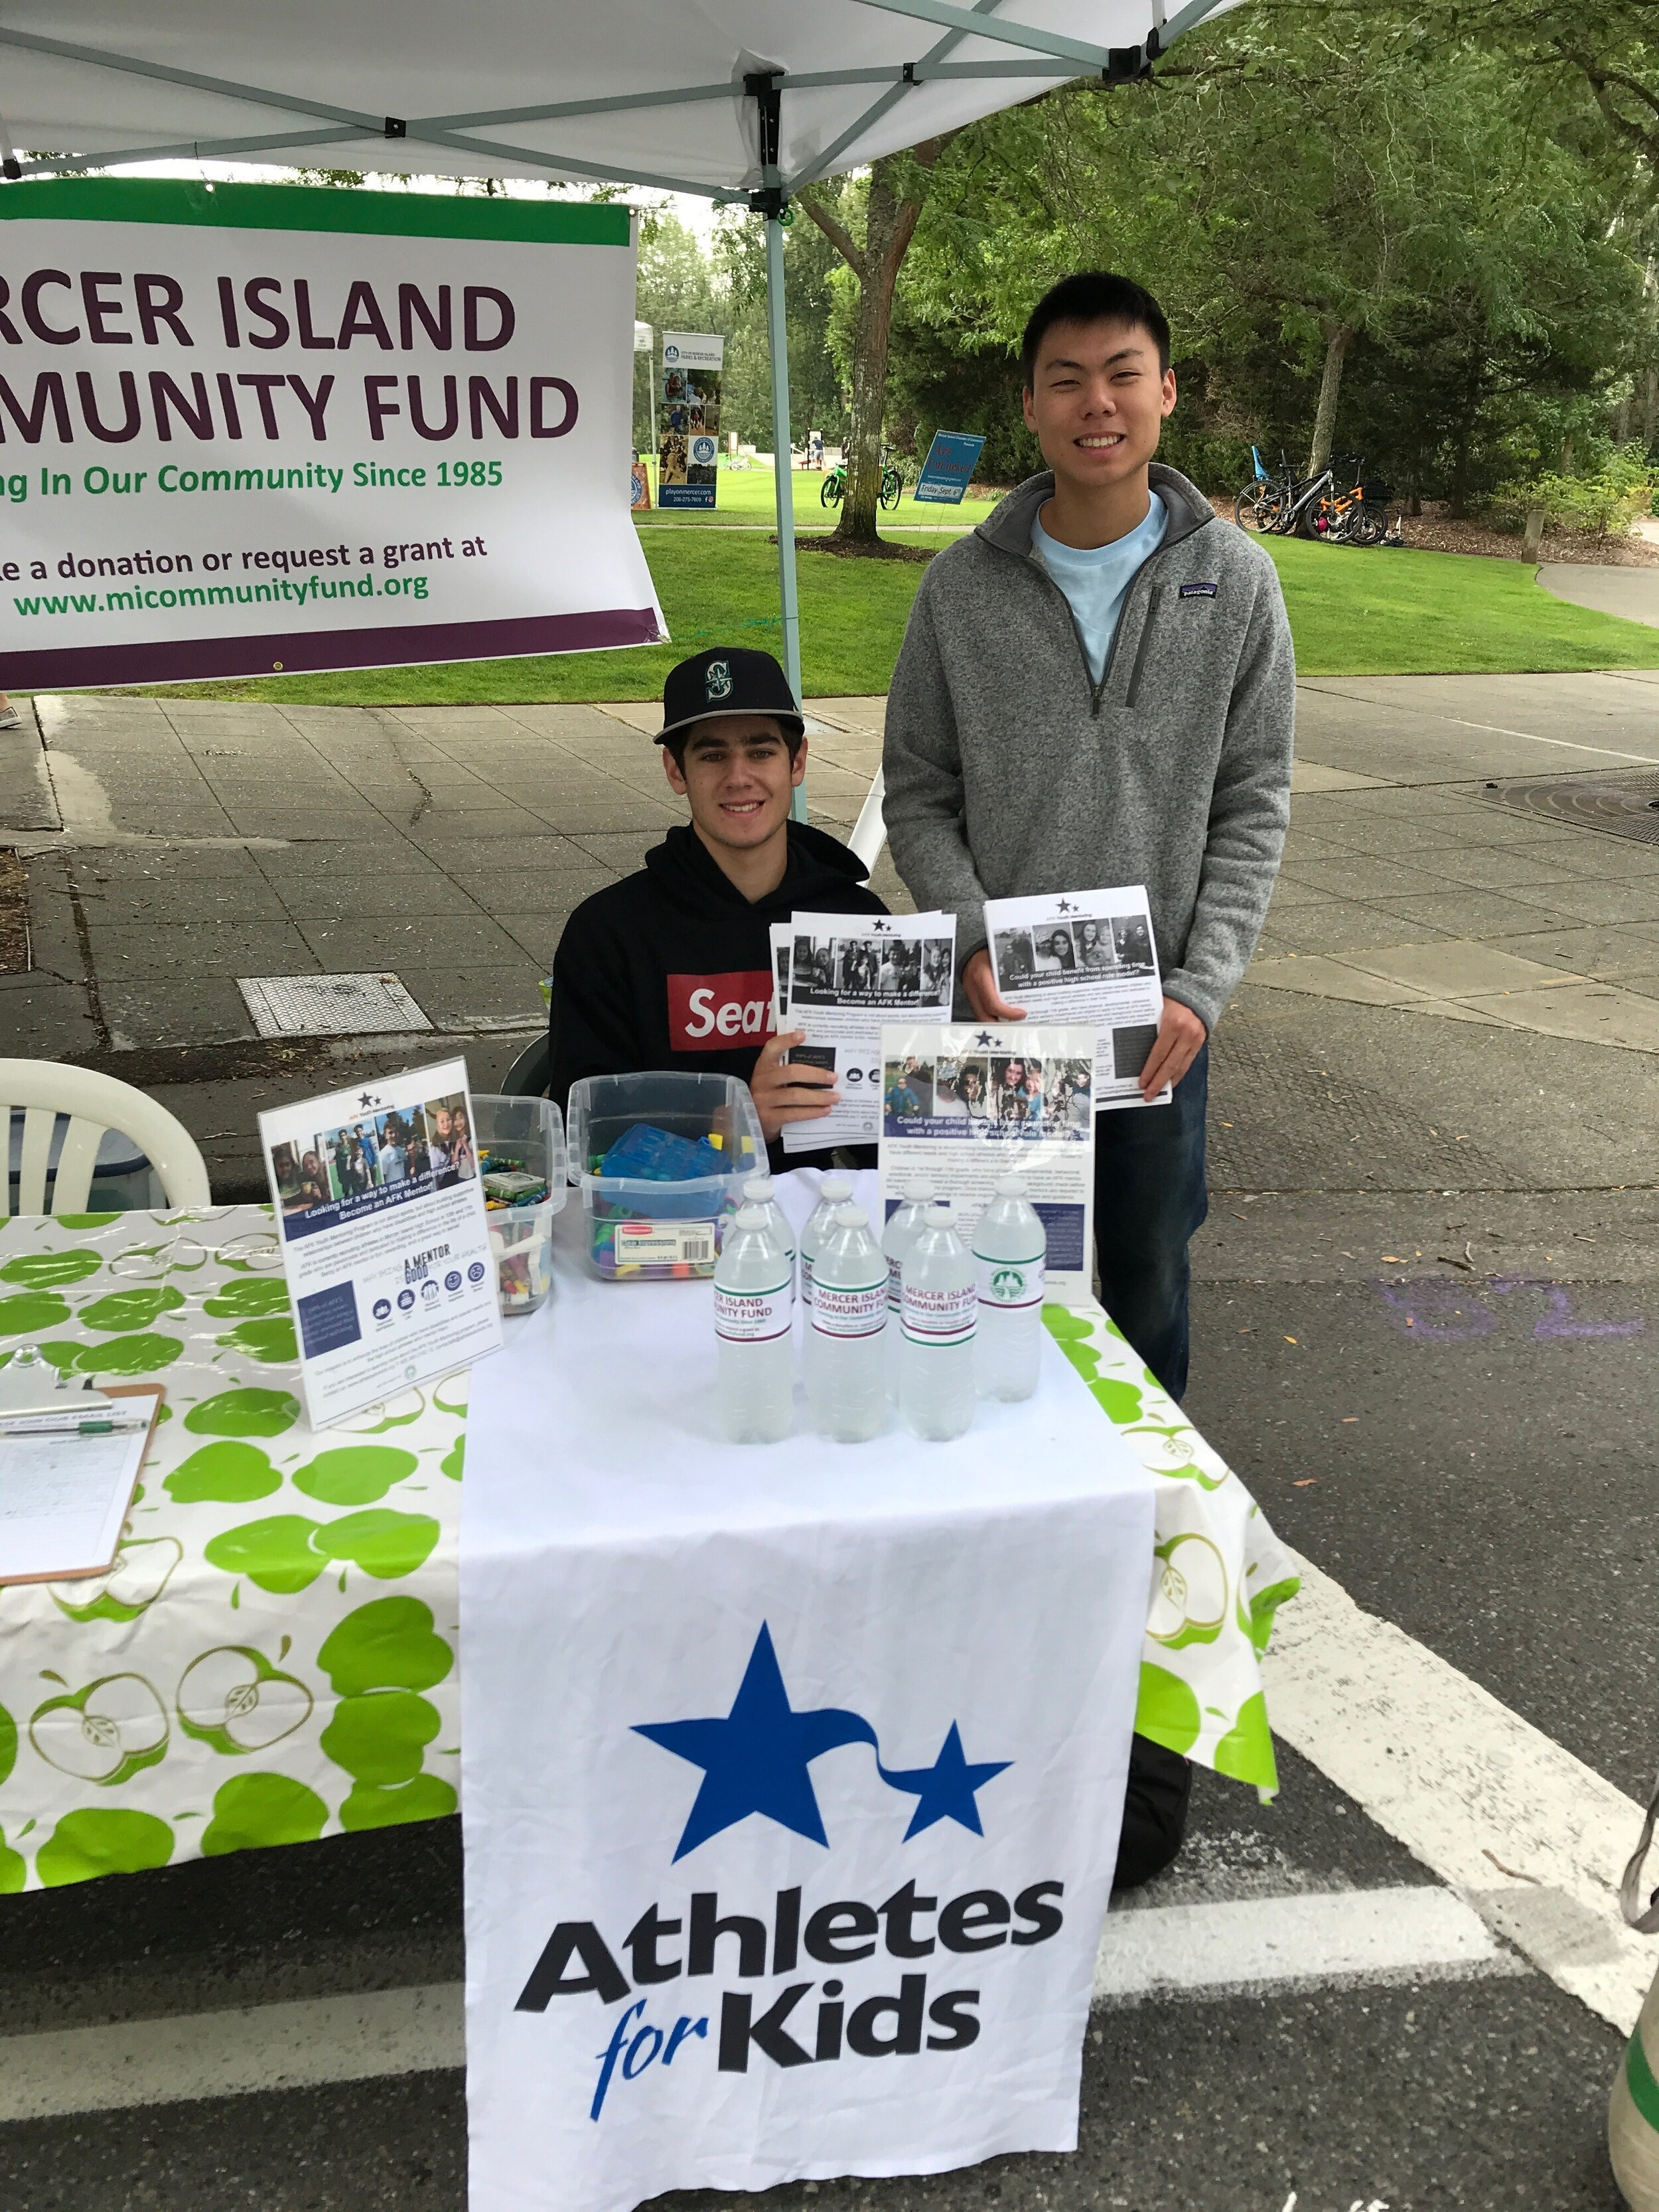 Athletes for Kids and MI Community Fund shared a booth at Farmer'